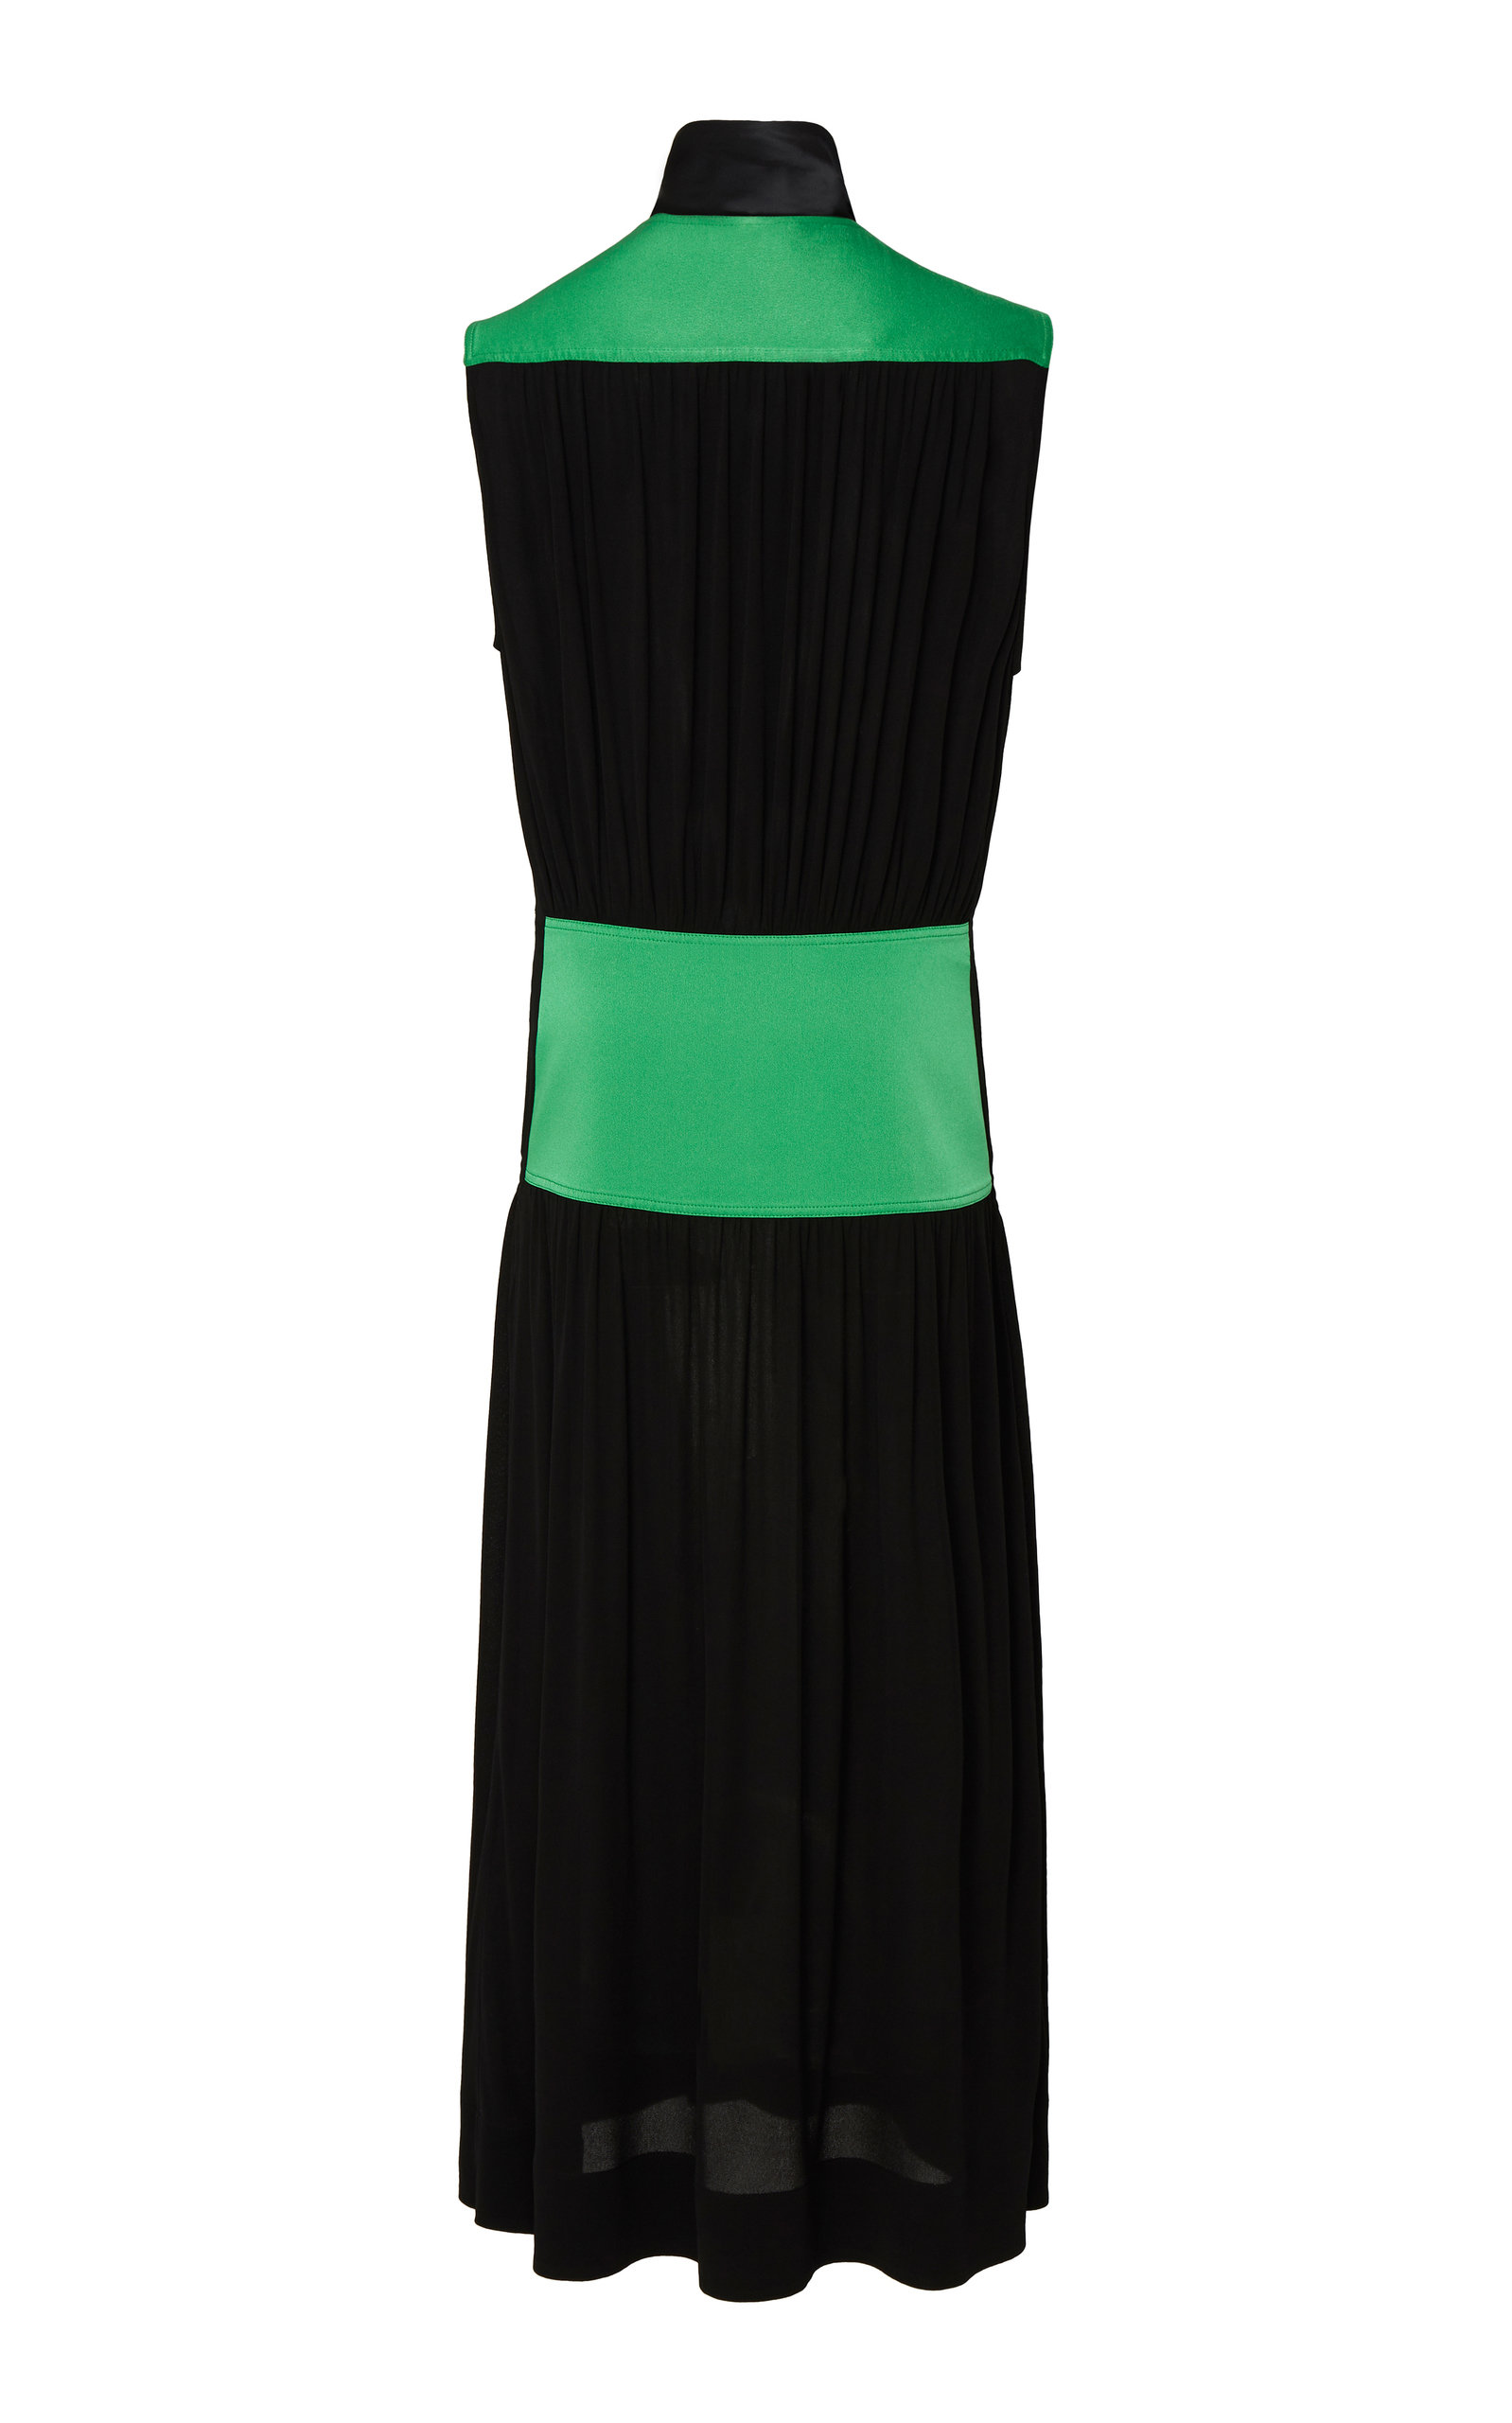 Givenchy Dresses Two-Tone Tie-Detailed Georgette Midi Dress